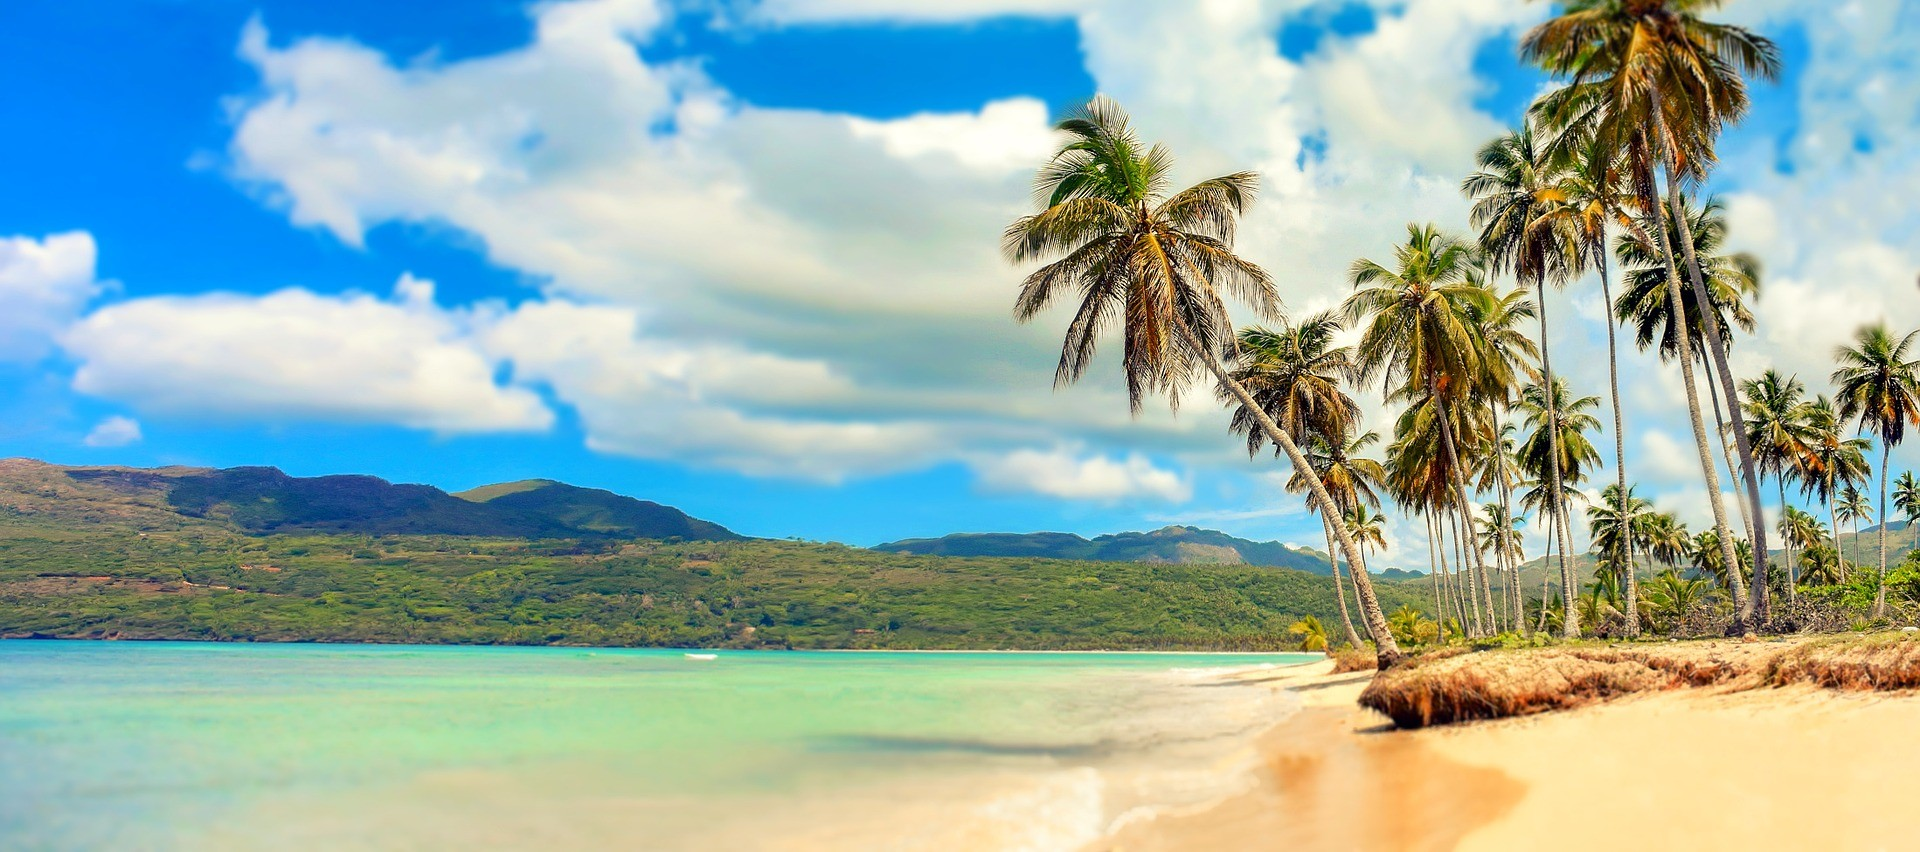 news-main-caribbean-tourism-growth-rate-more-than-double-global-average.1573548287.jpg